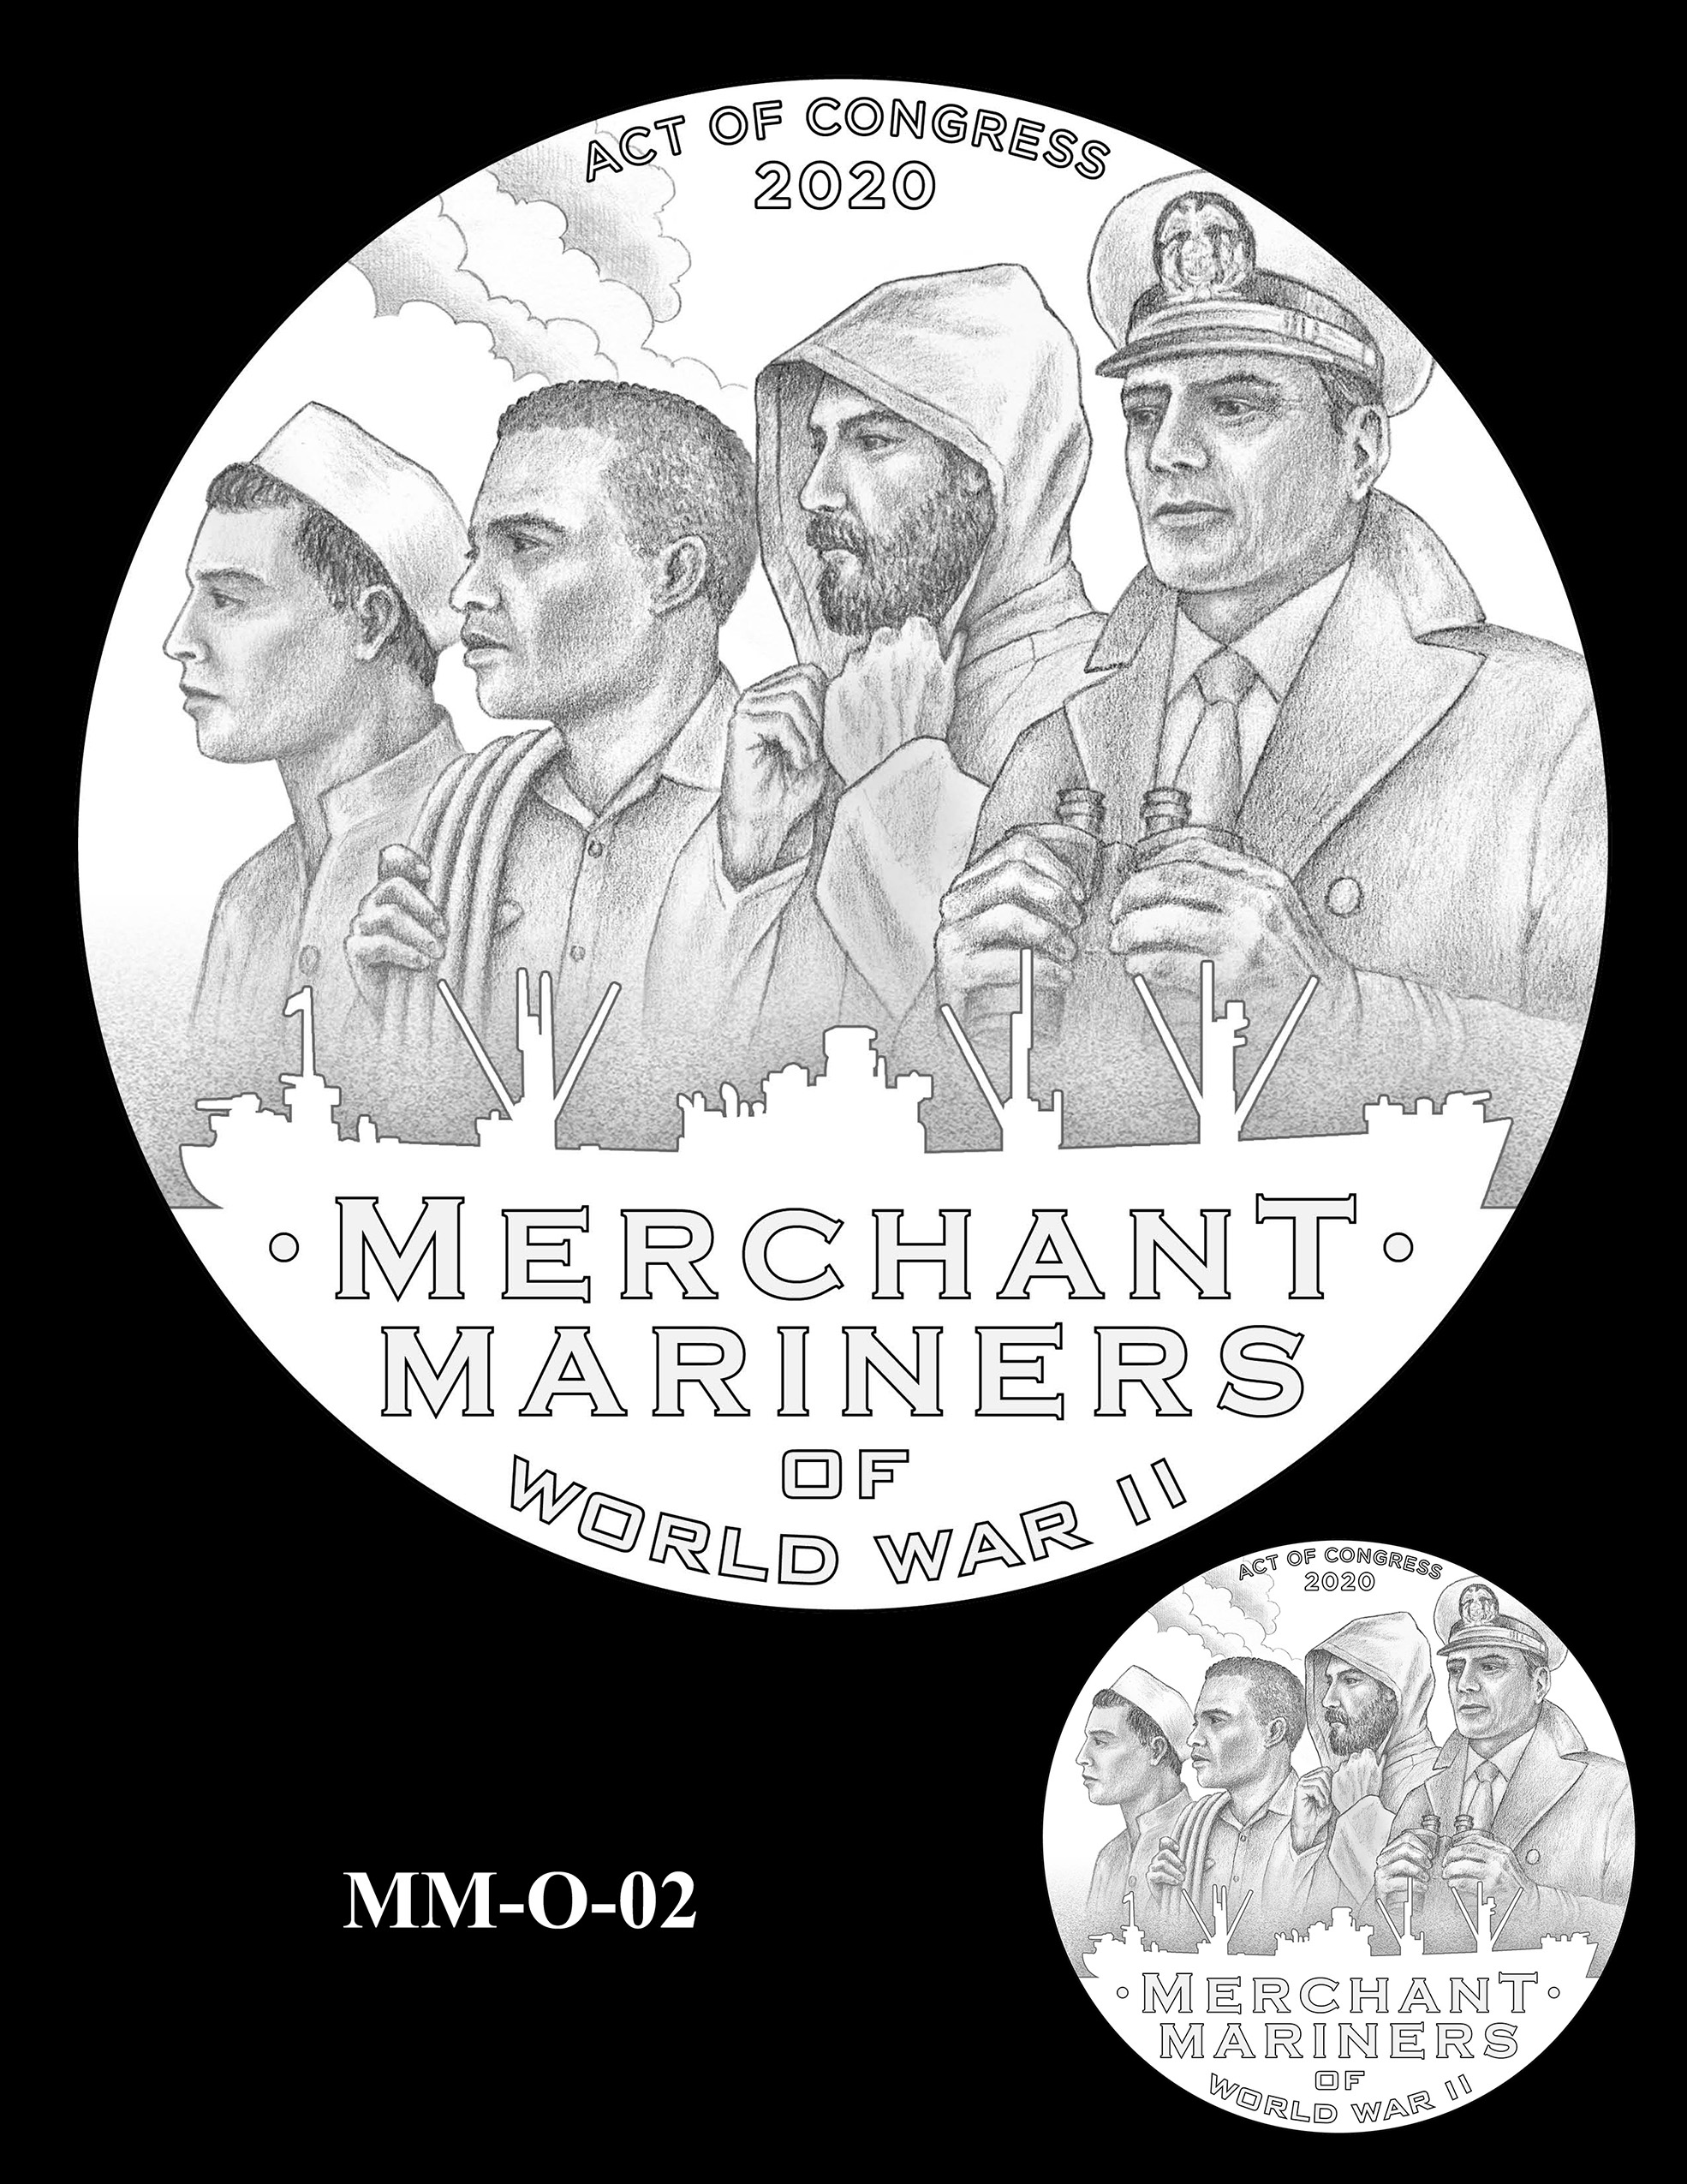 MM-O-02 -- Merchant Mariners of World War II Congressional Gold Medal